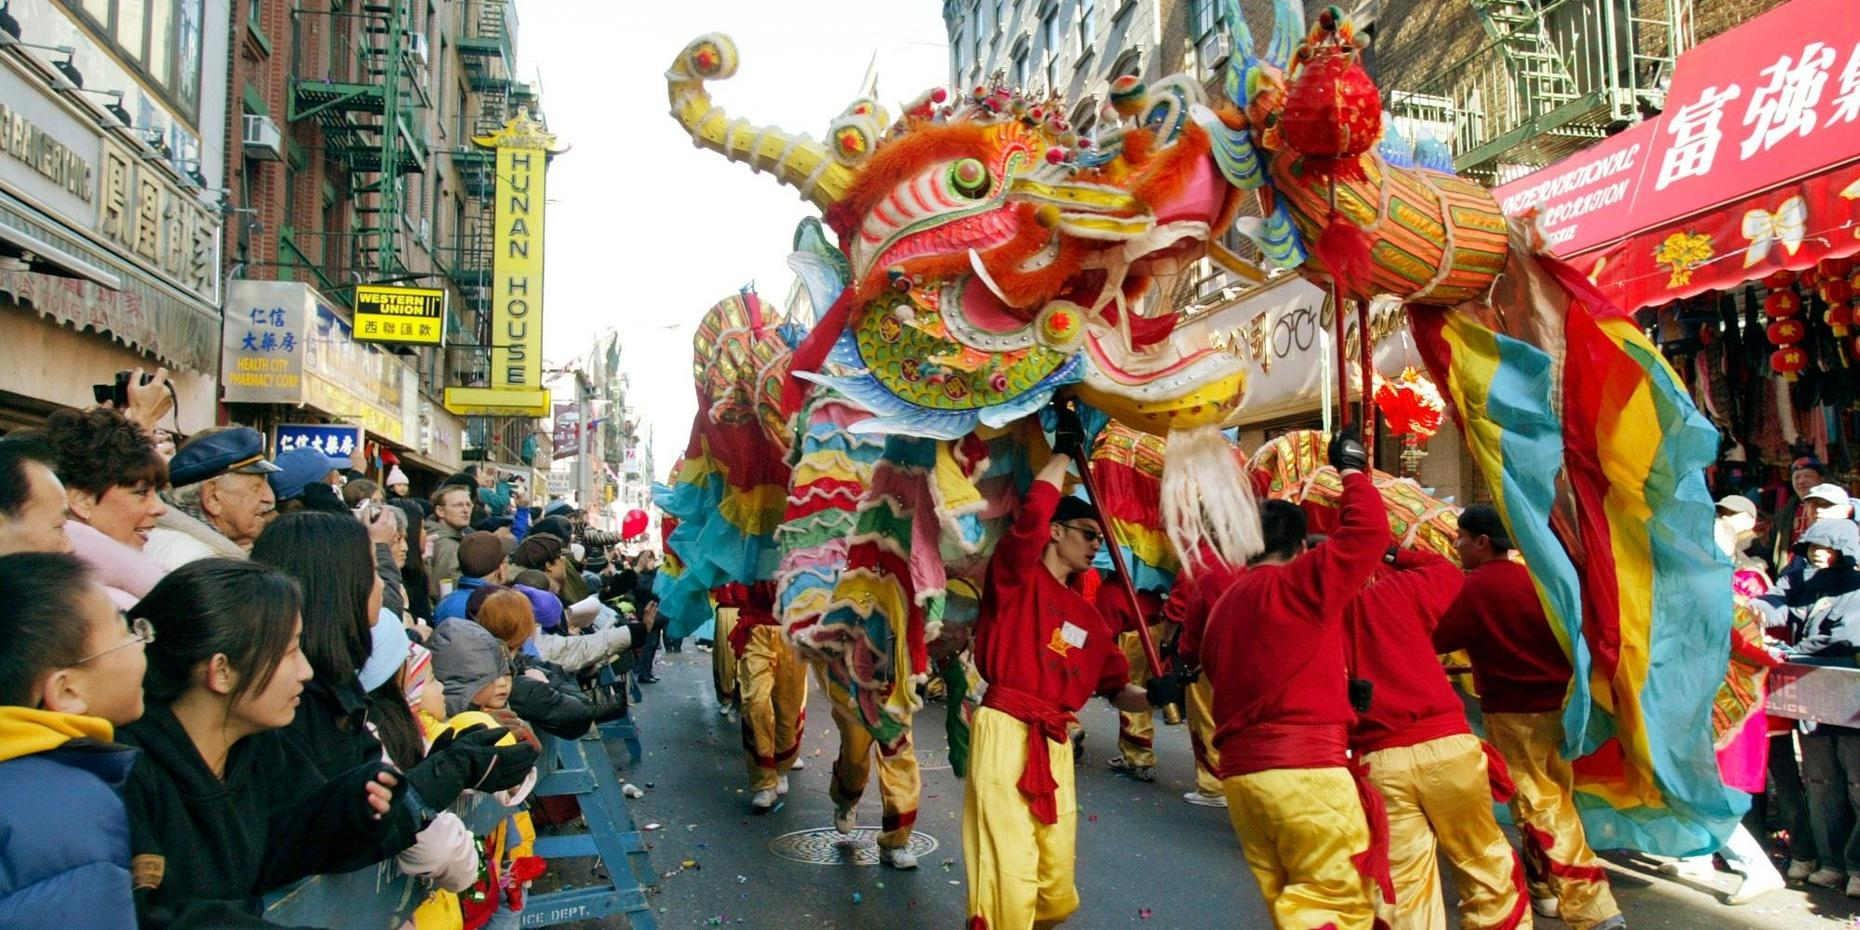 2-Hour Chinatown Tour in NYC